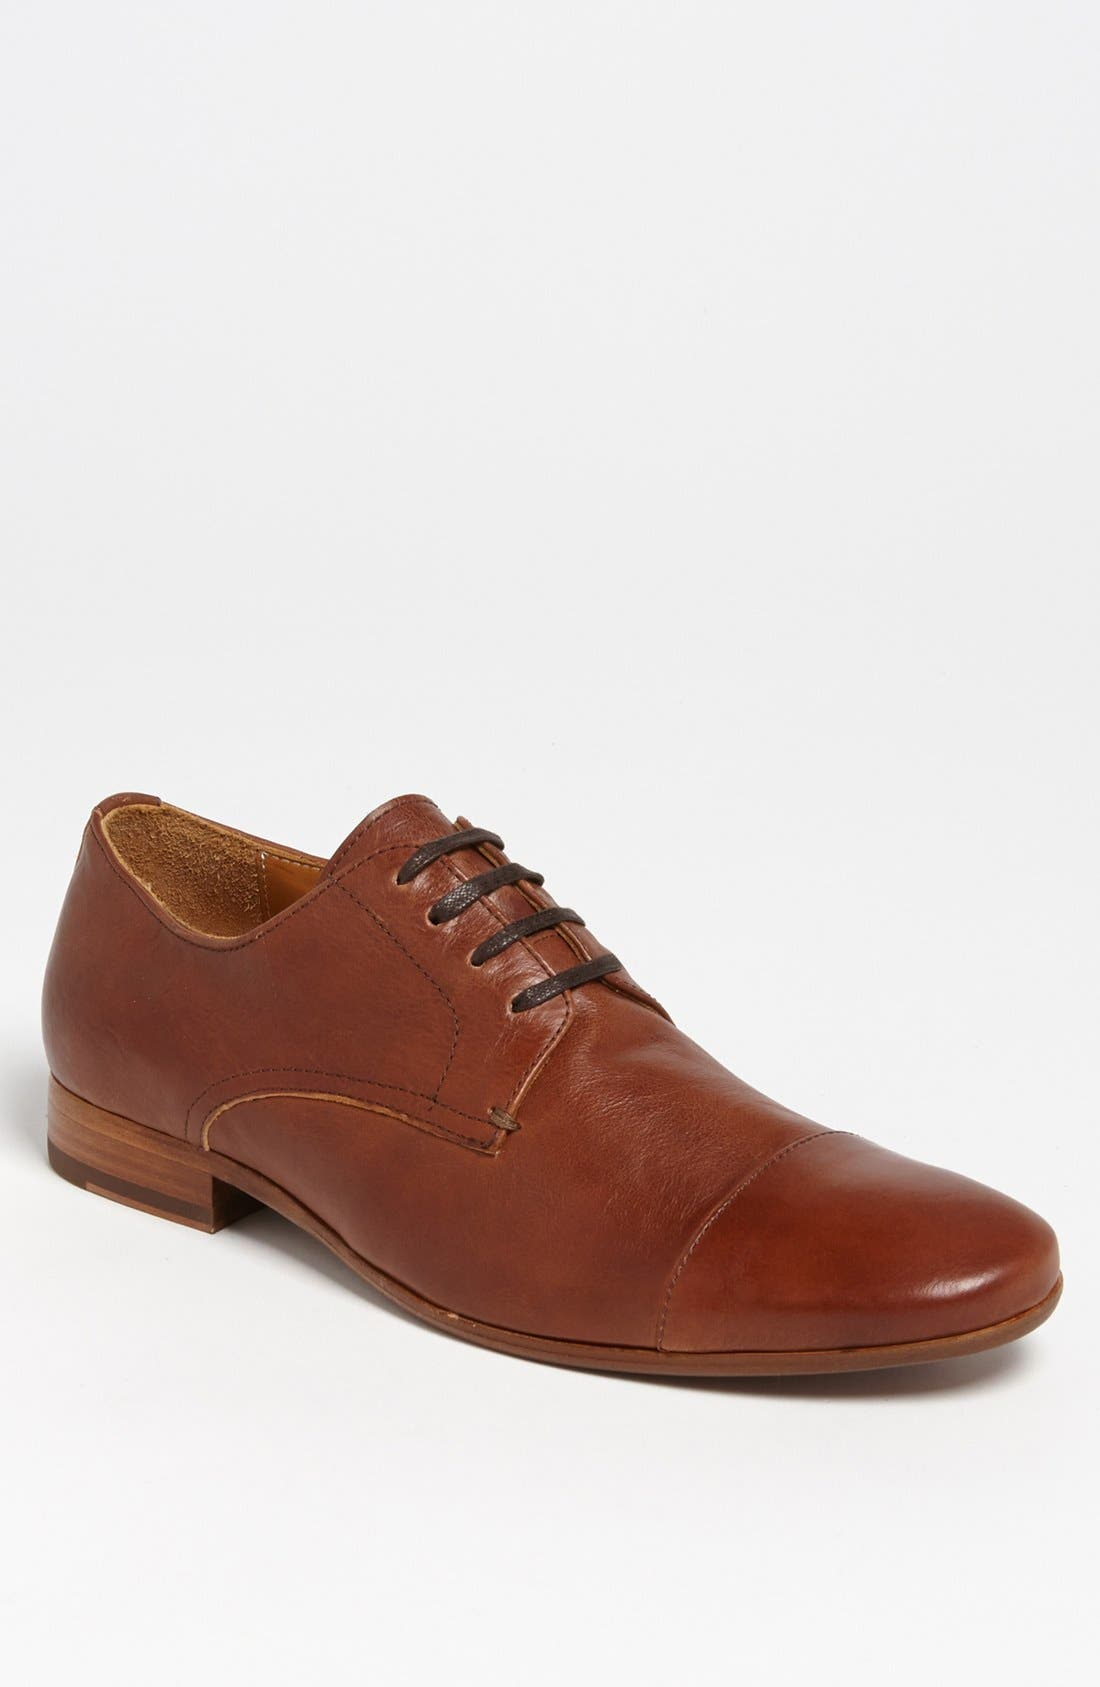 Main Image - Maison Forte 'Blackburn' Cap Toe Derby